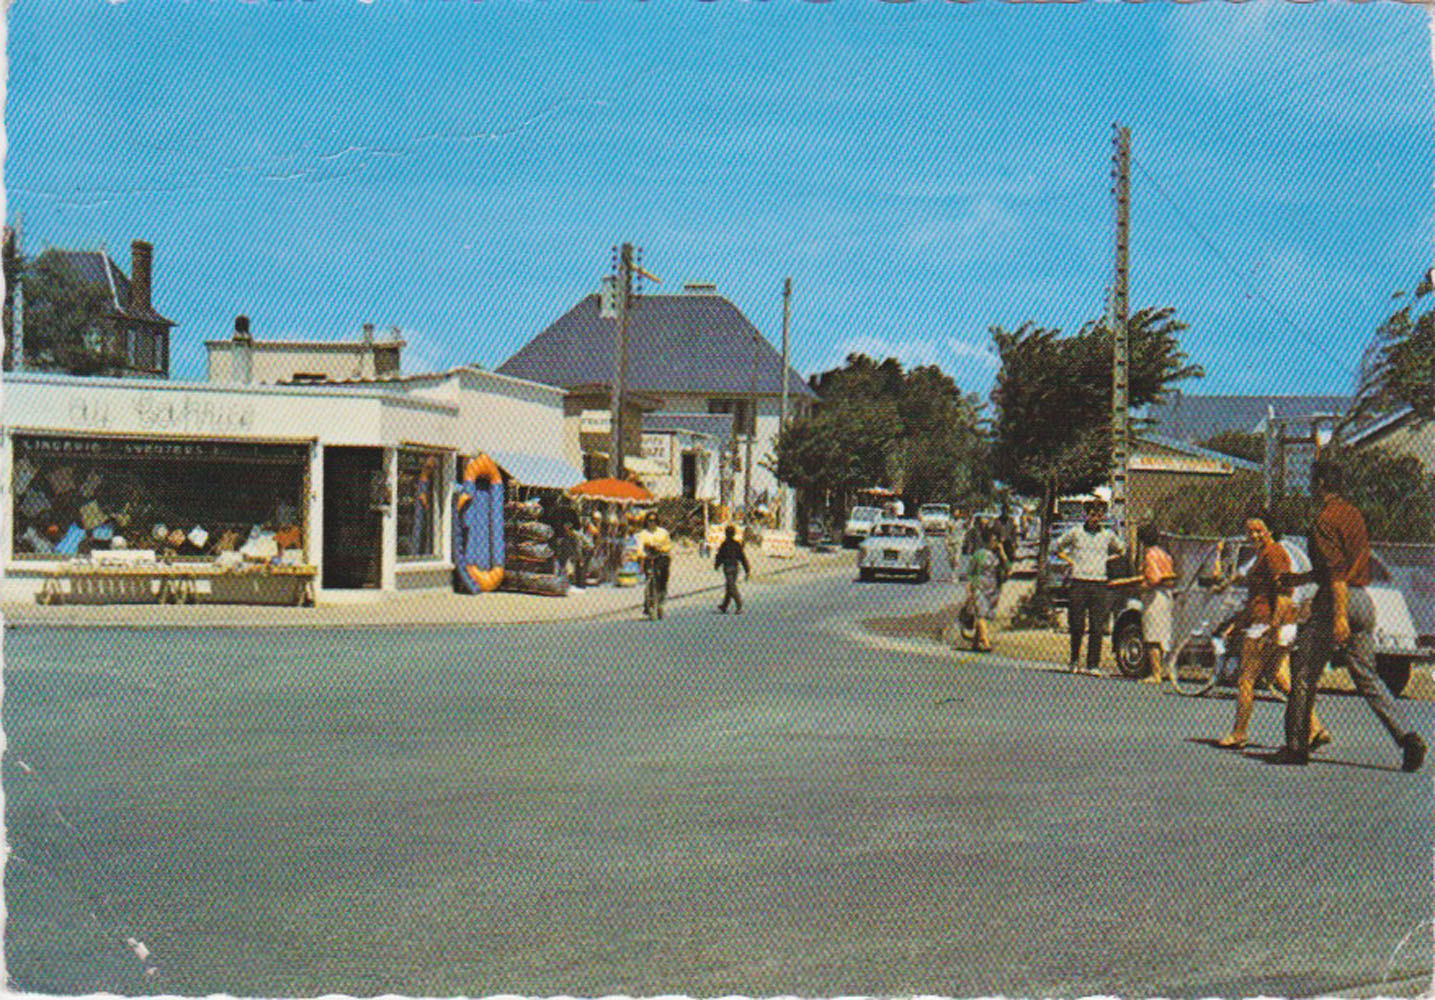 1970 St Martin Carrefour Central 2 © collection Jean Claude Ferret